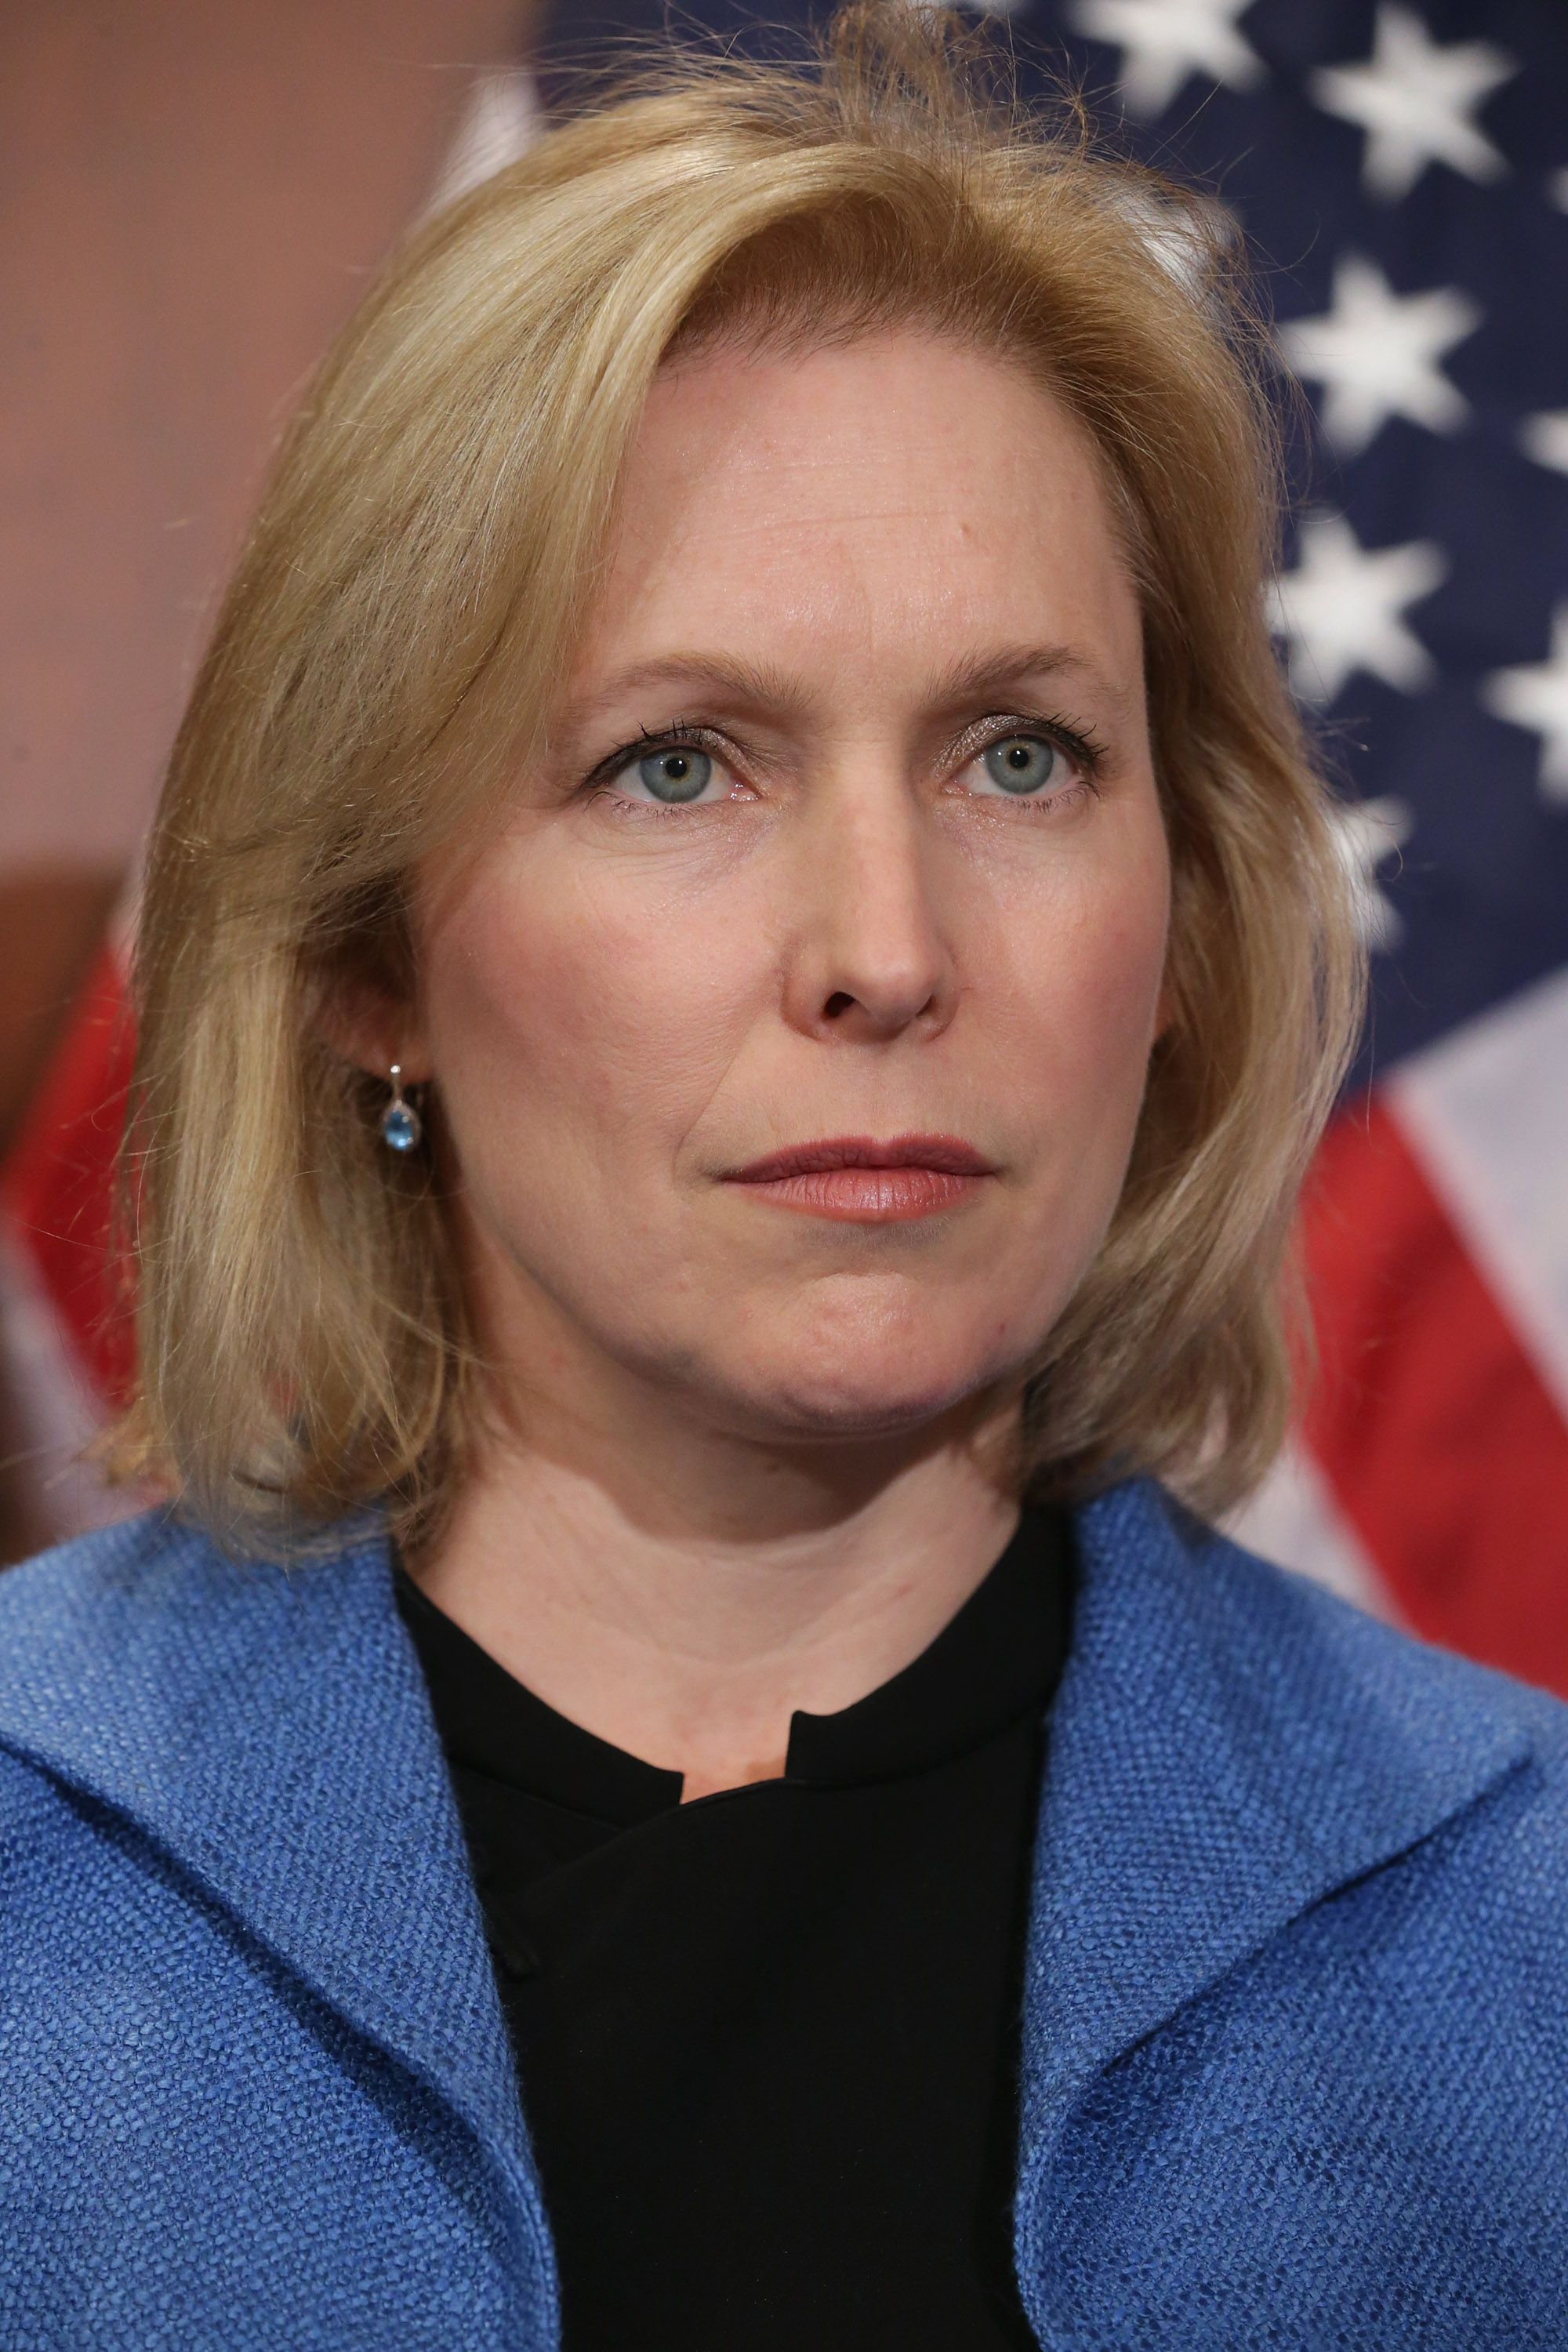 Sen. Kristen Gillibrand (D-NY) participates in a news conference about new legislation aimed at curbing sexual assults on college and university campuses at the U.S. Capitol.